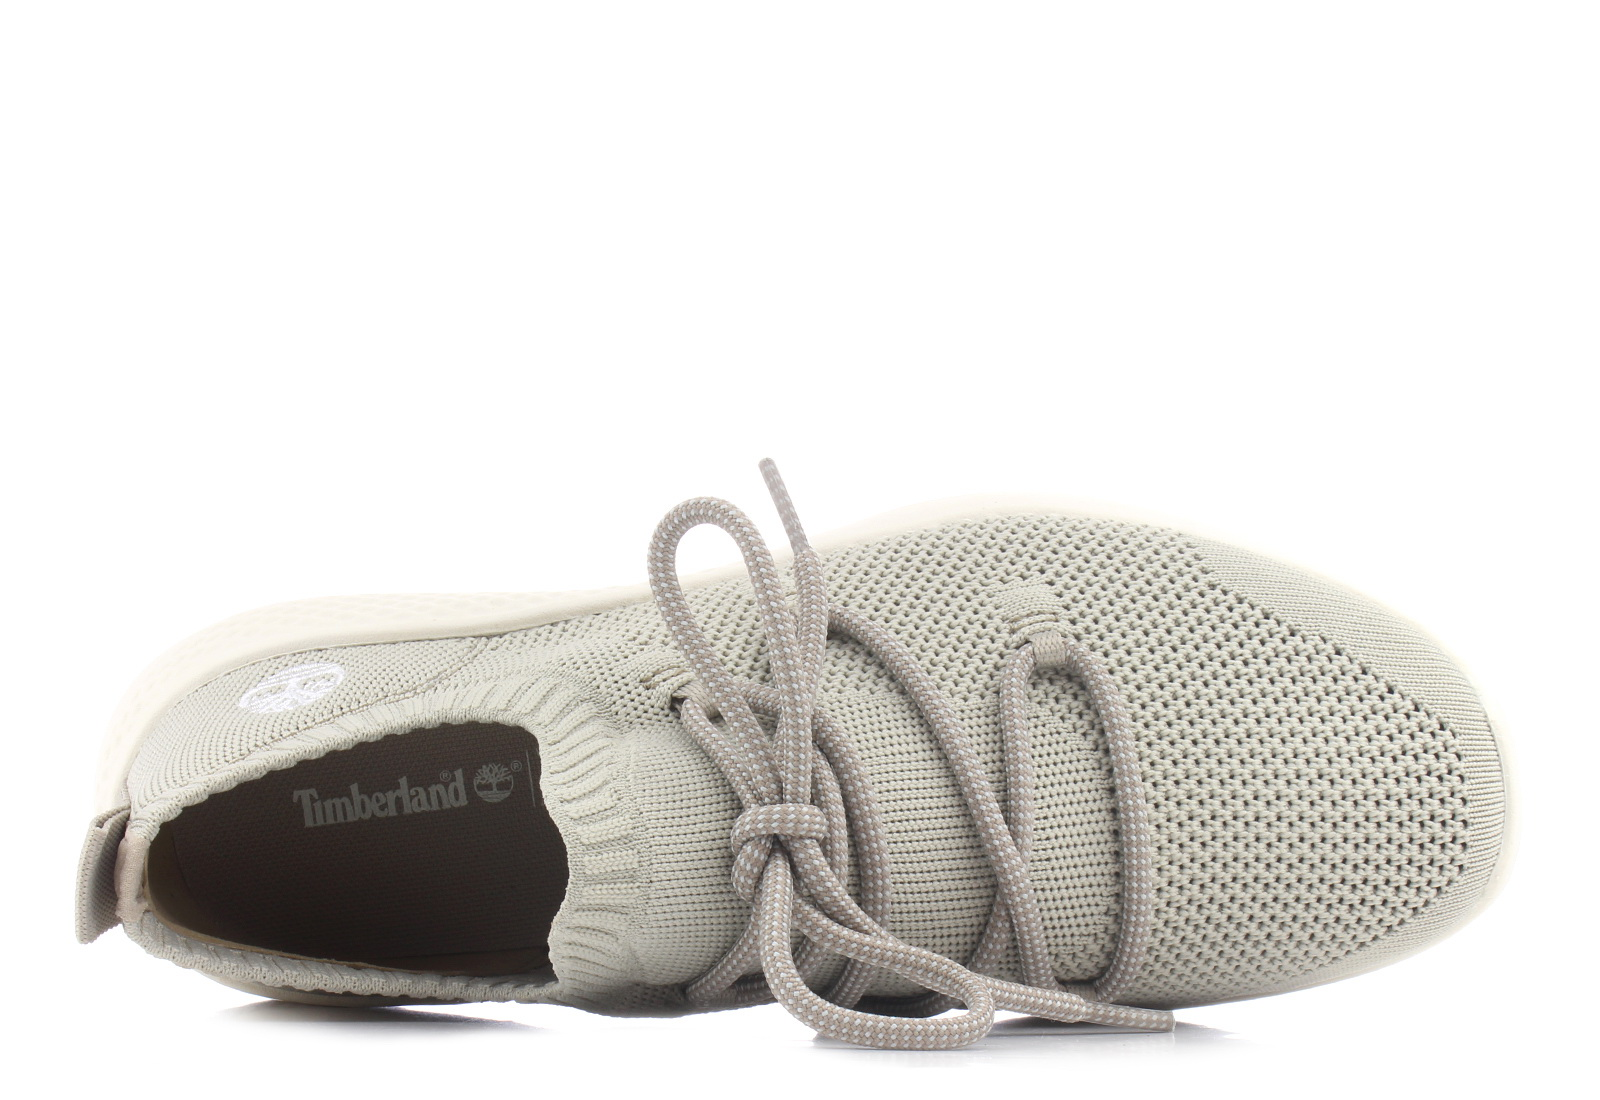 Timberland Shoes Flyroam Knit Ox A1YQ2 tau Online shop for sneakers, shoes and boots